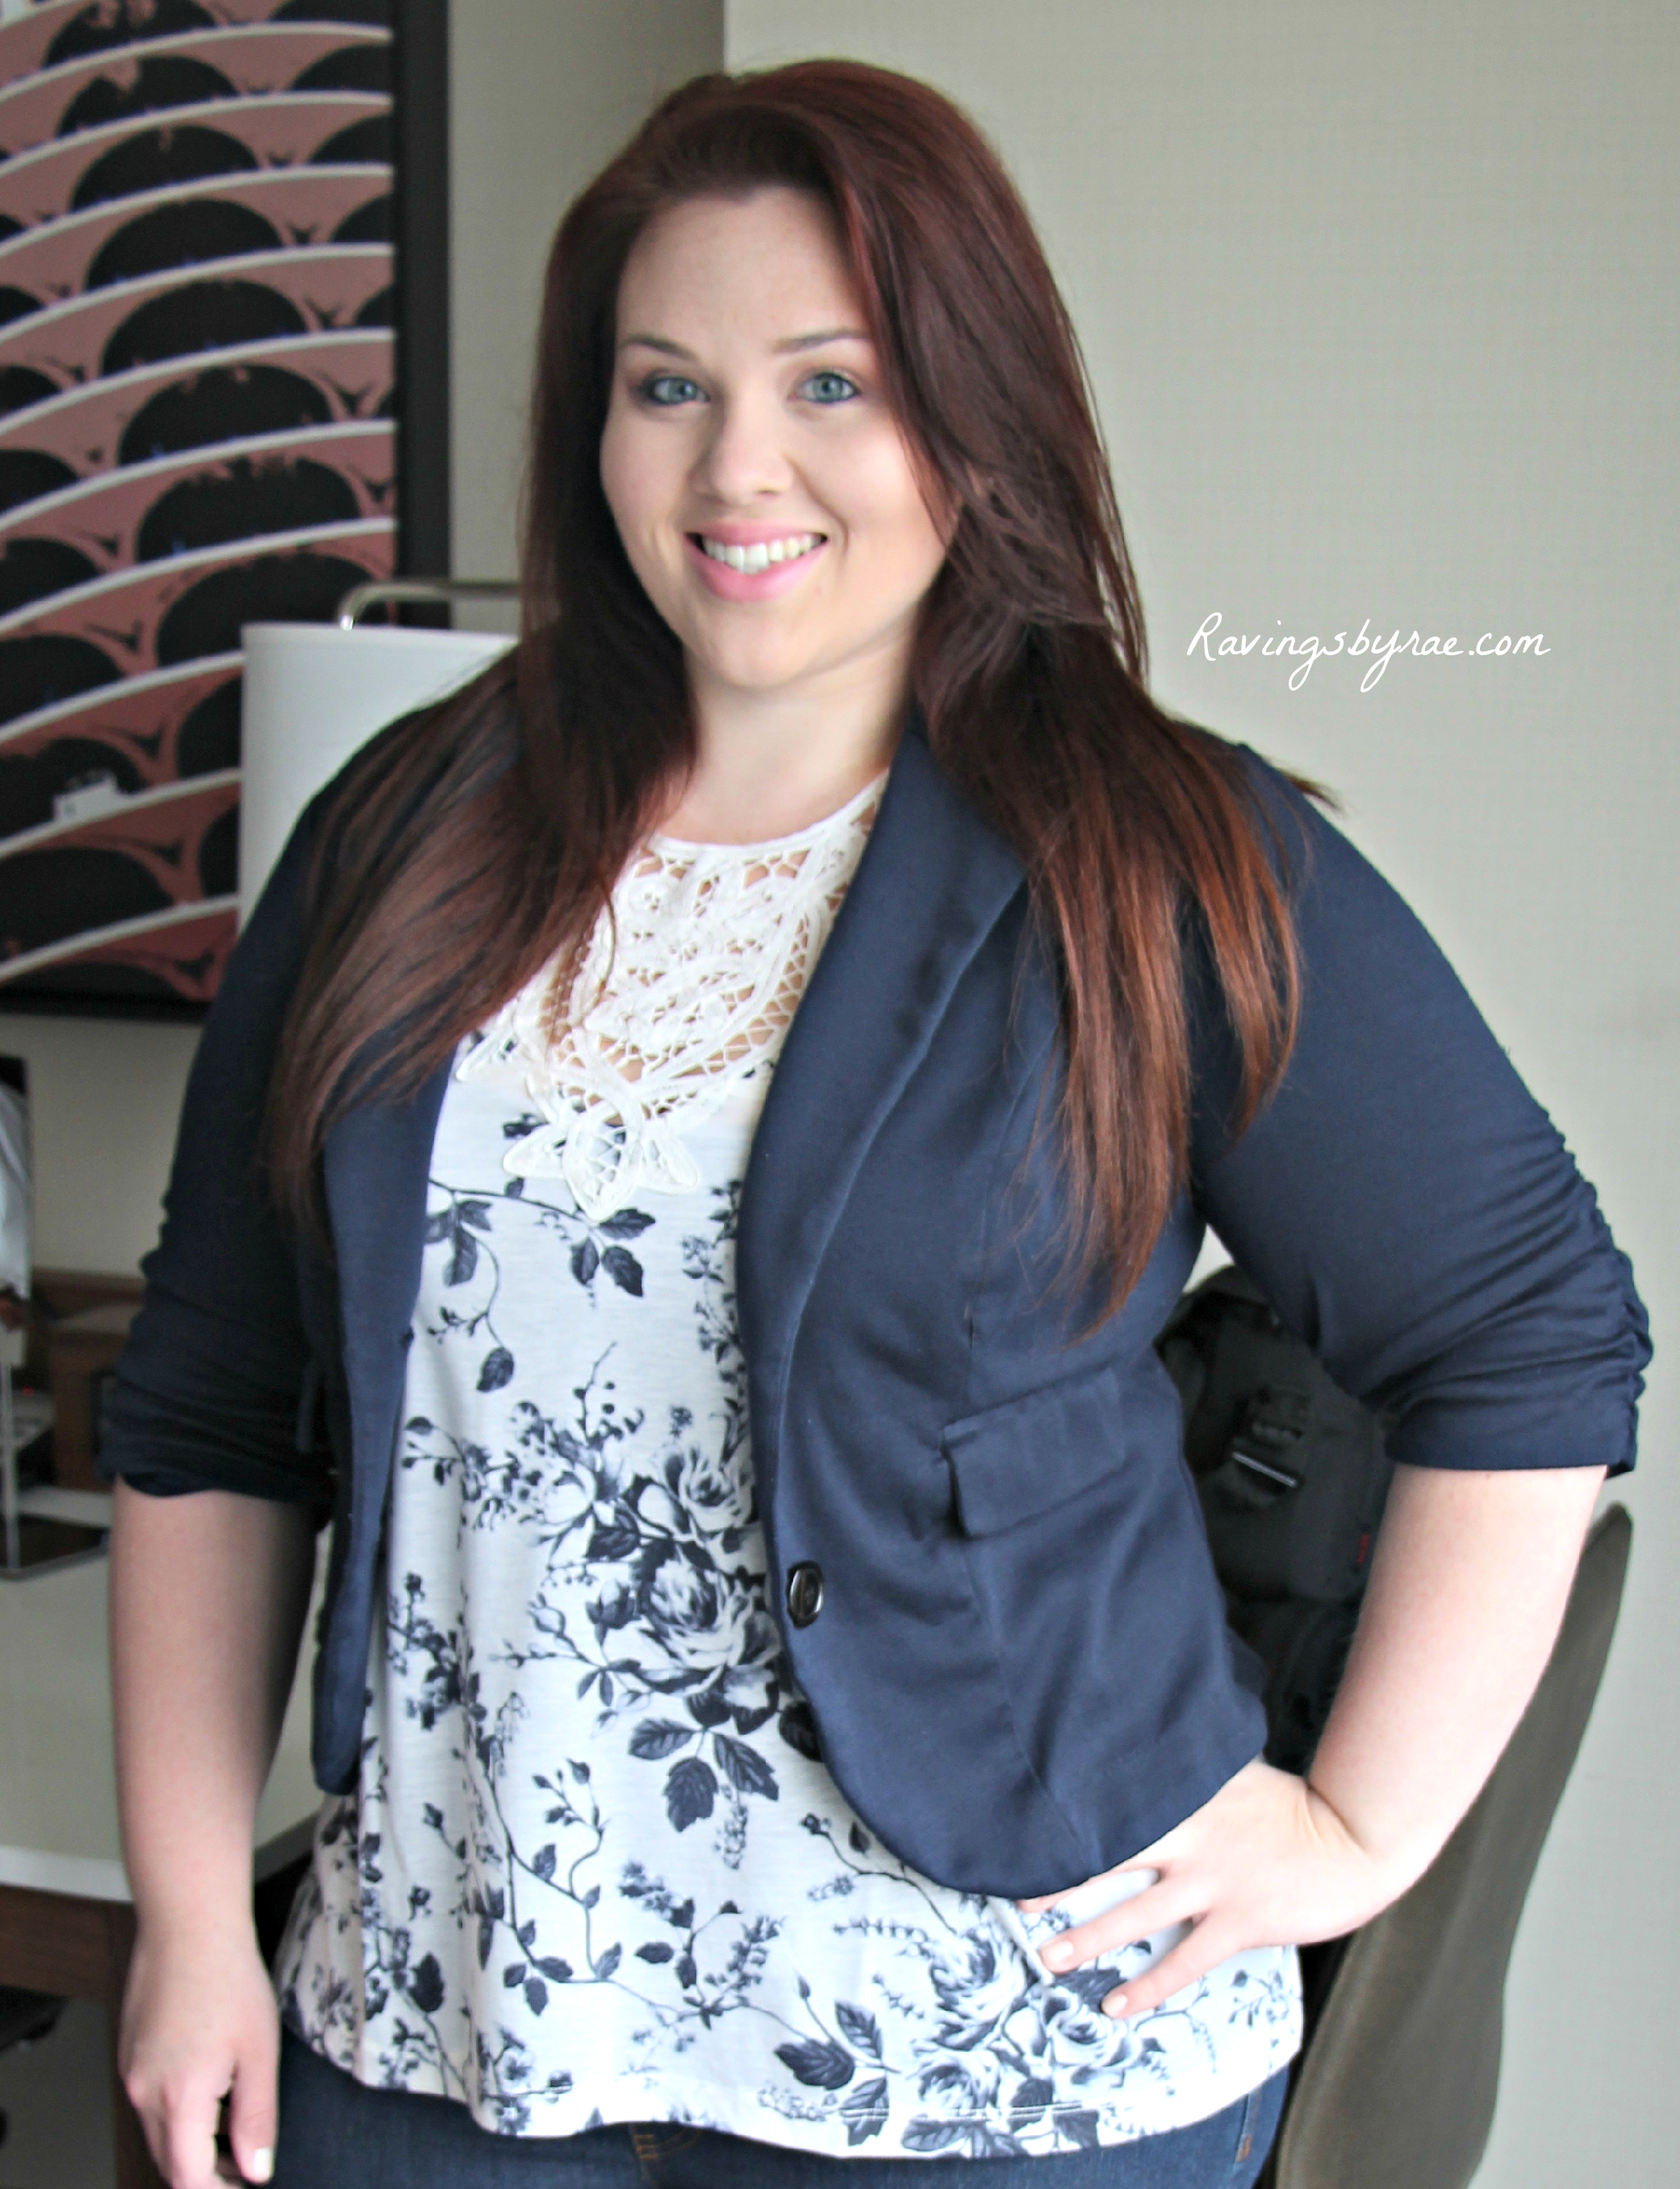 plus size girls Archives - Sarah Rae Vargas